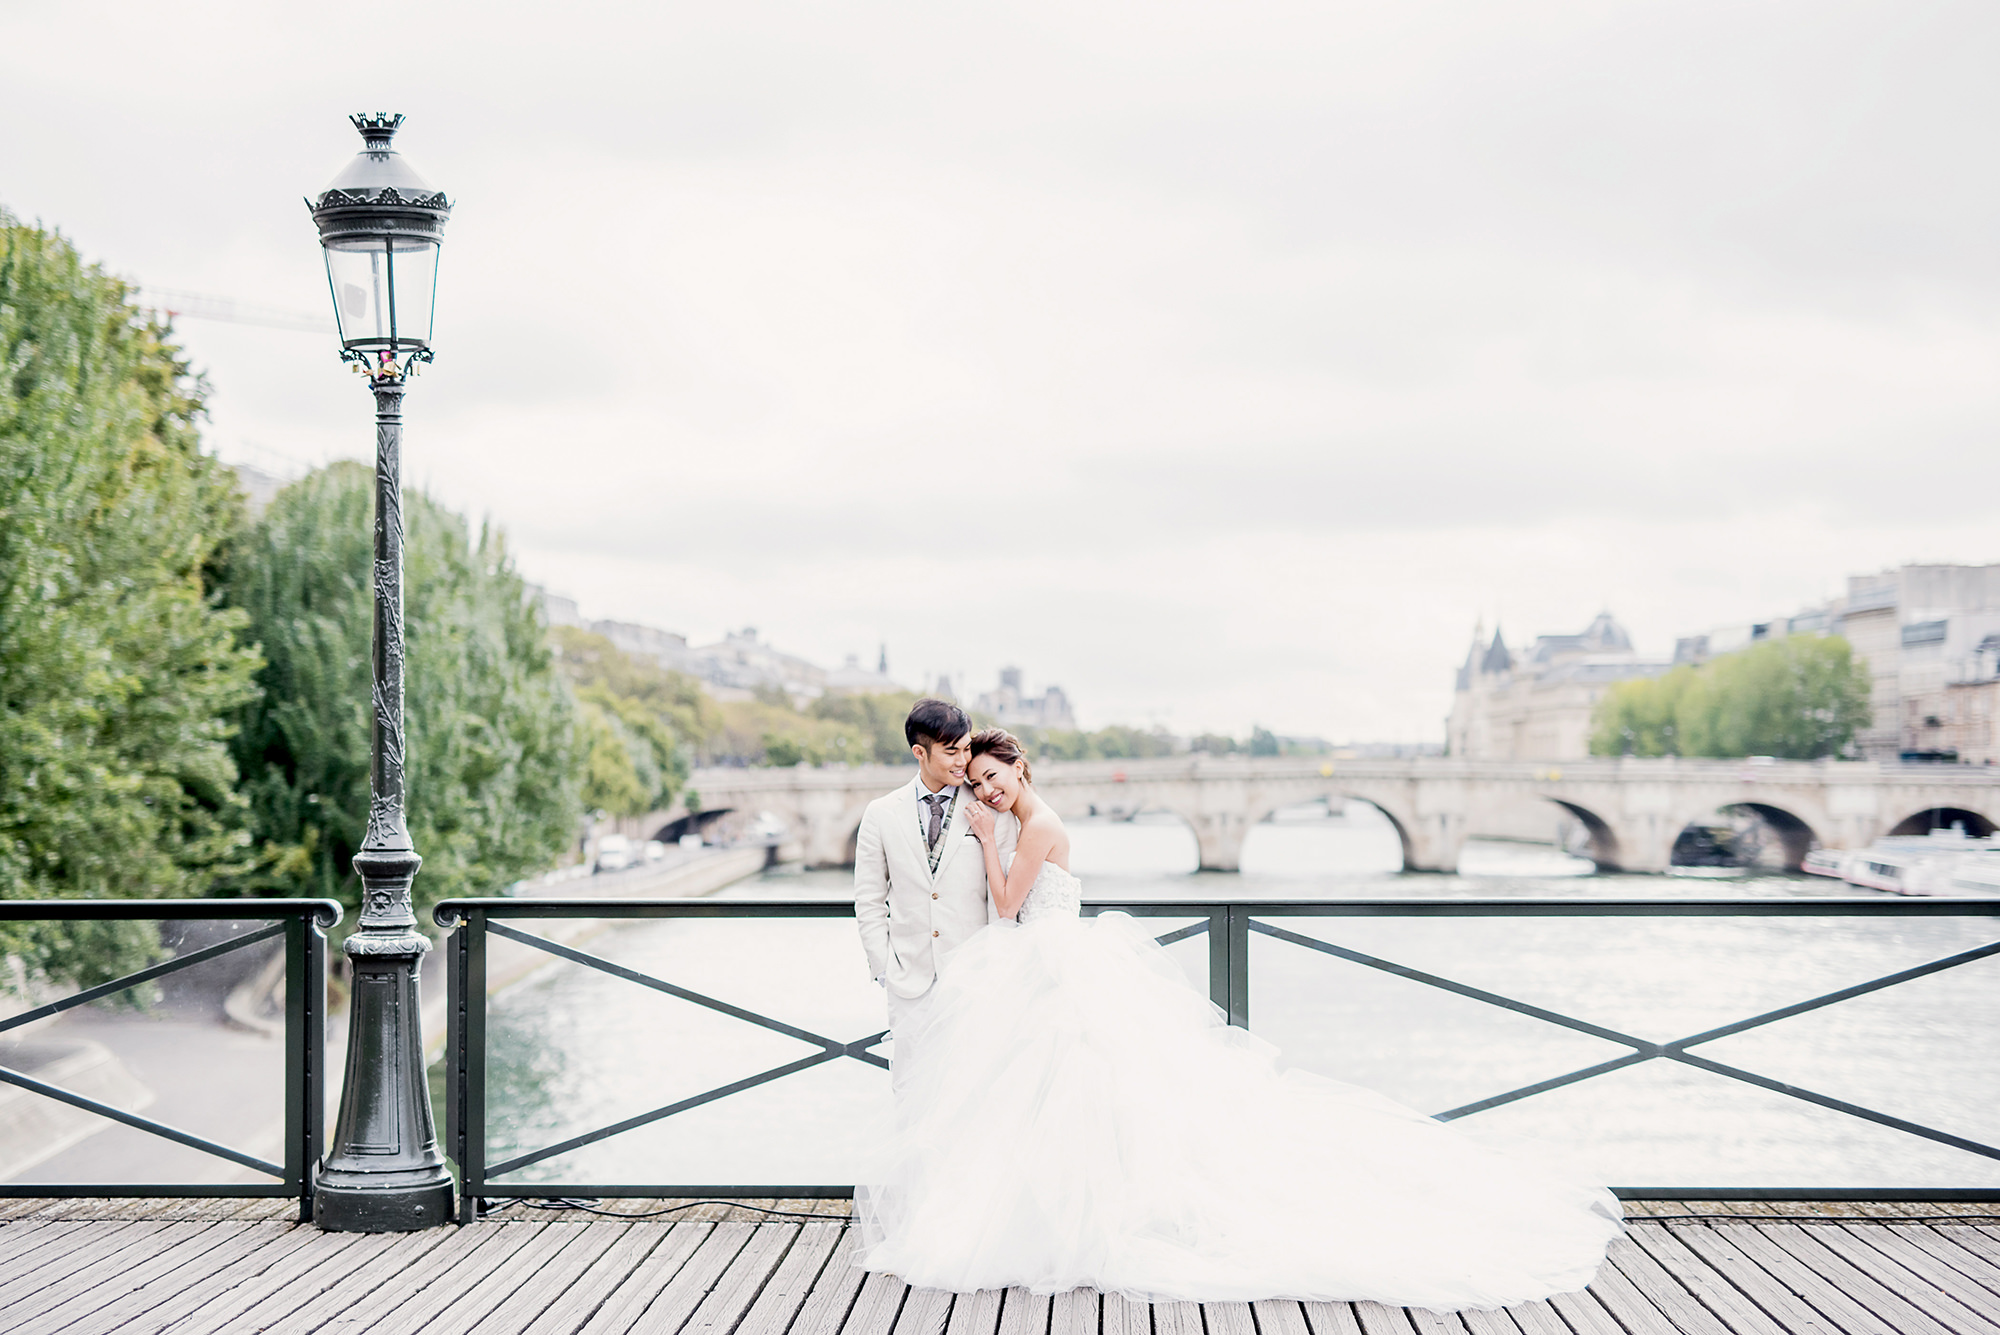 These are the prettiest places for a wedding proposal in Paris